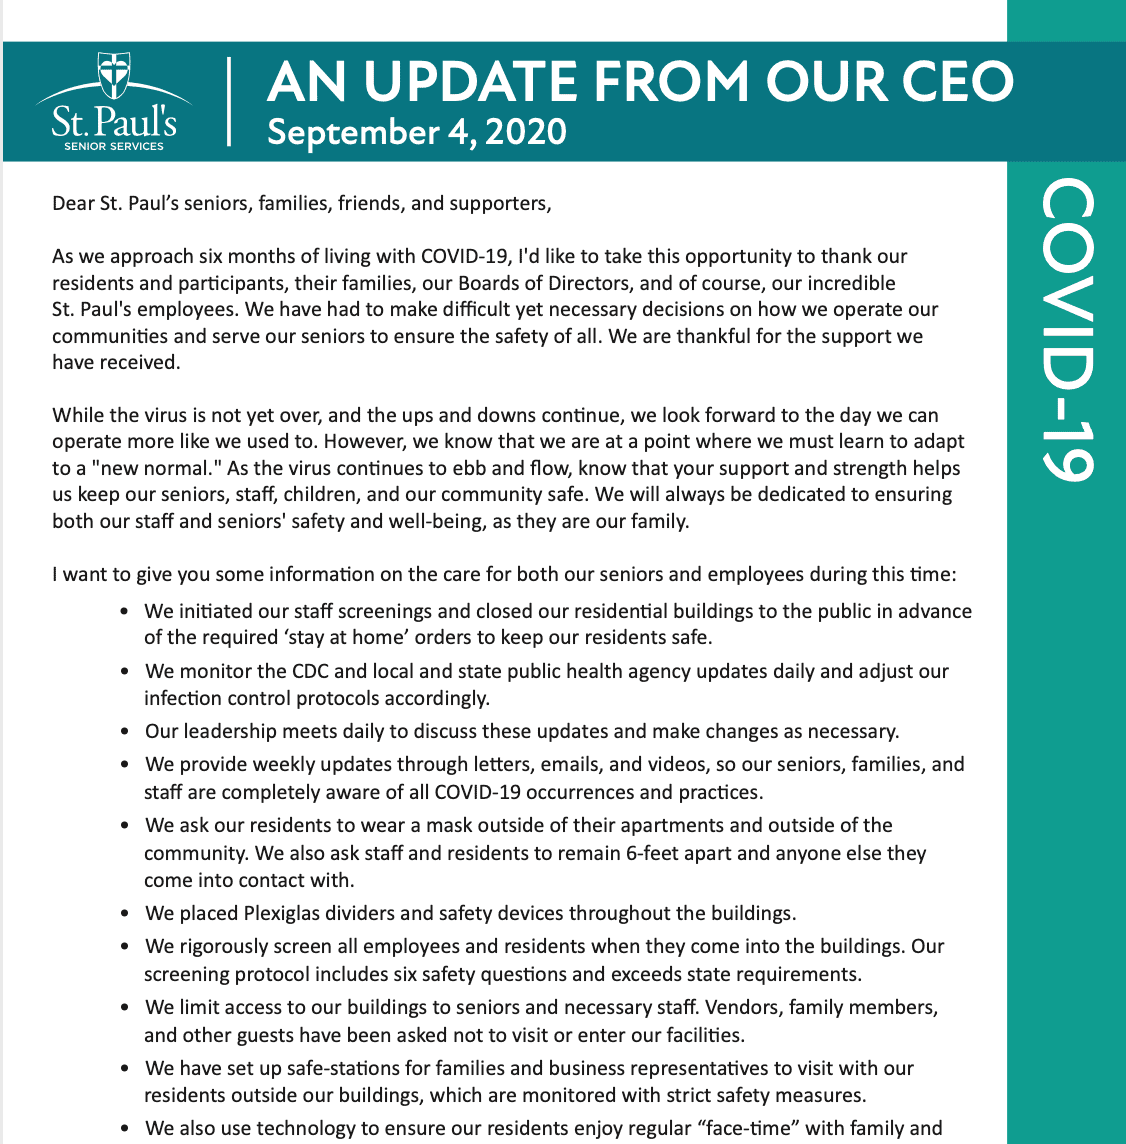 update from our CEO 09/04/2020